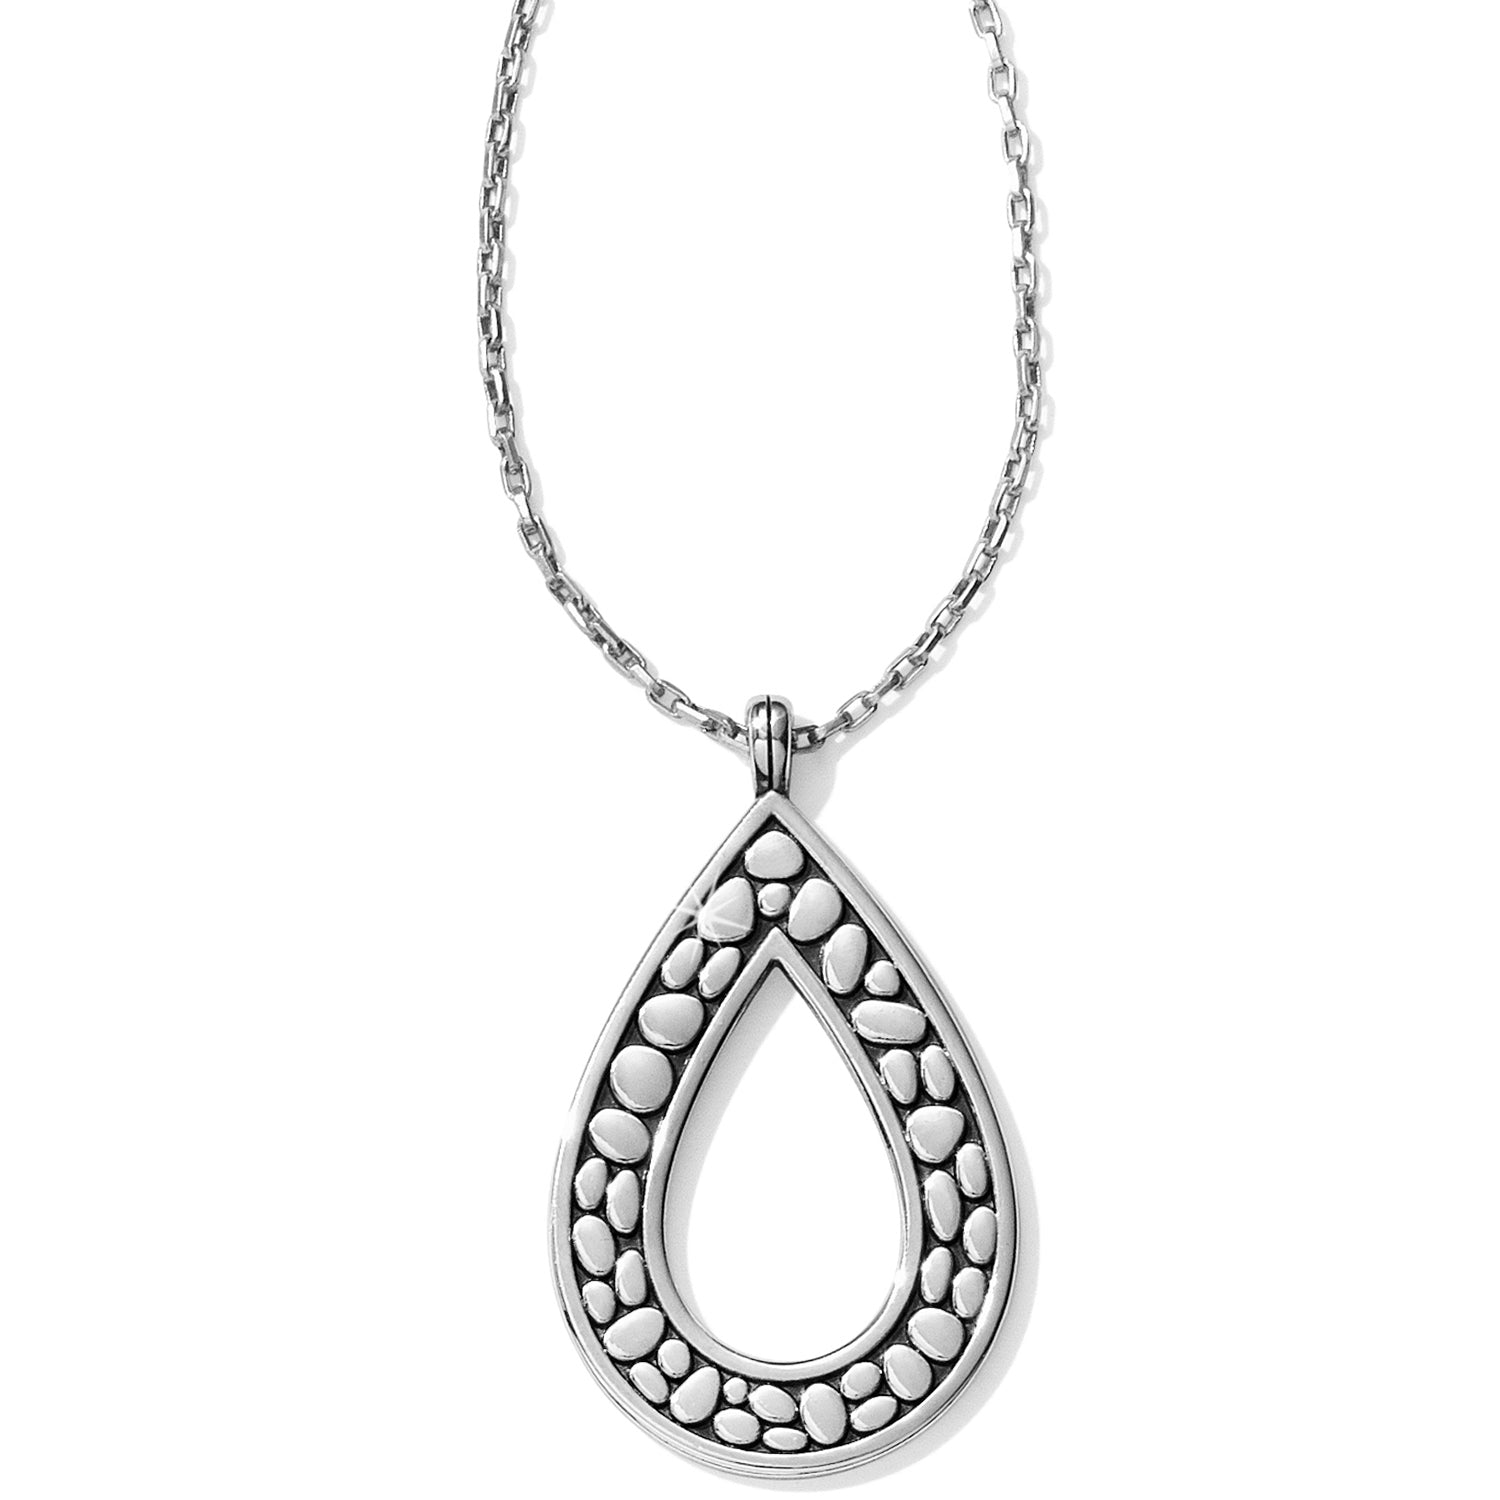 Pebble Open Teardrop Necklace